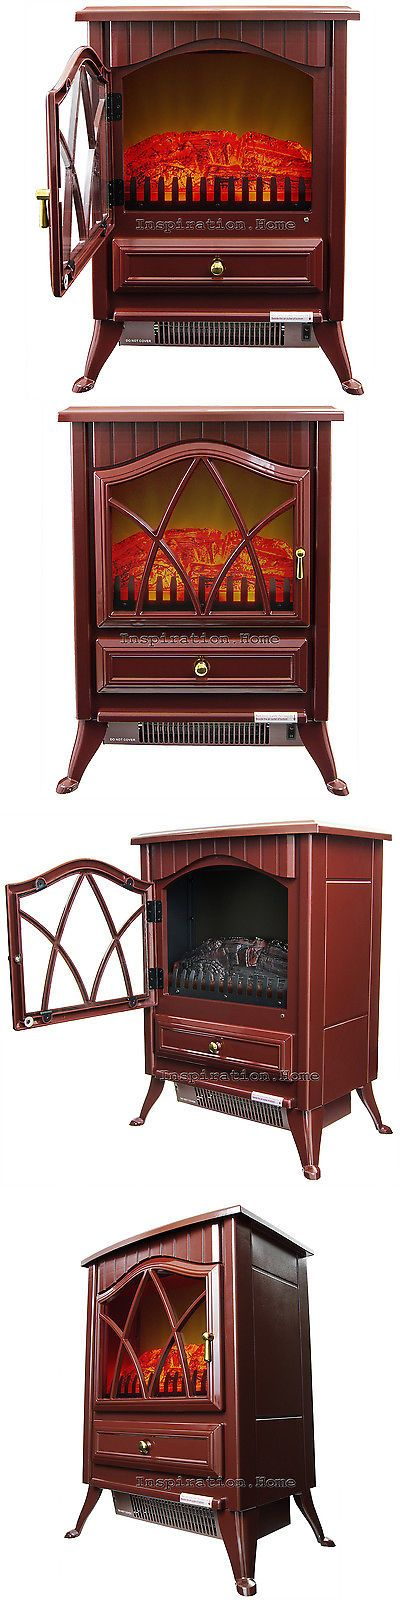 Other Fireplaces and Stoves 20564: Free Standing Log Electric Fireplace Heater Adjustable Manual Control Red Color -> BUY IT NOW ONLY: $99.99 on eBay!